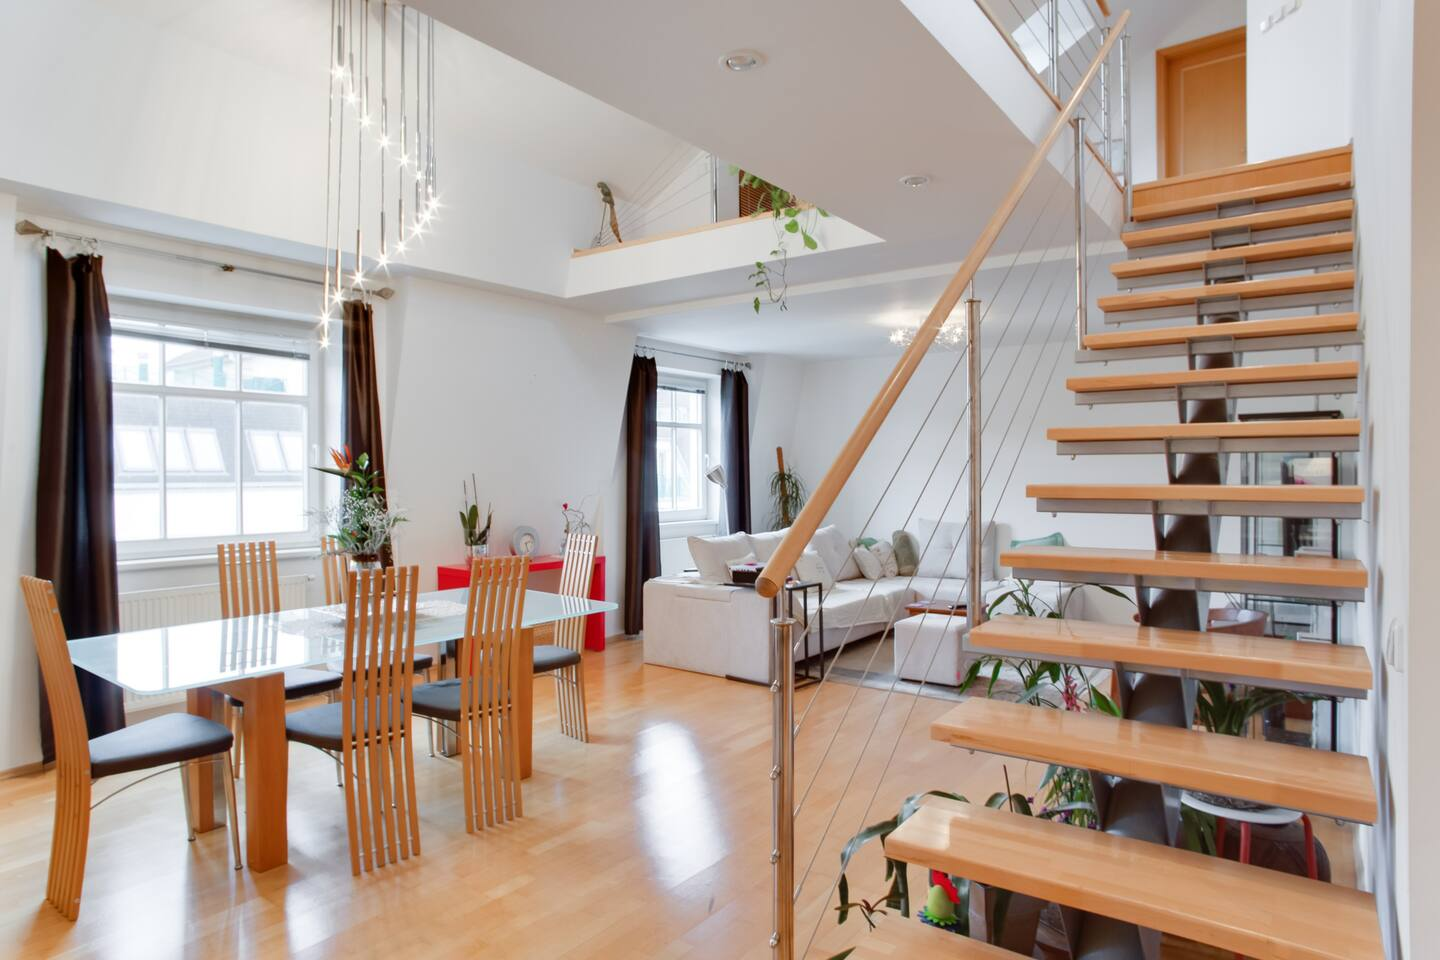 Duplex apt with 2 BDRM and terrace